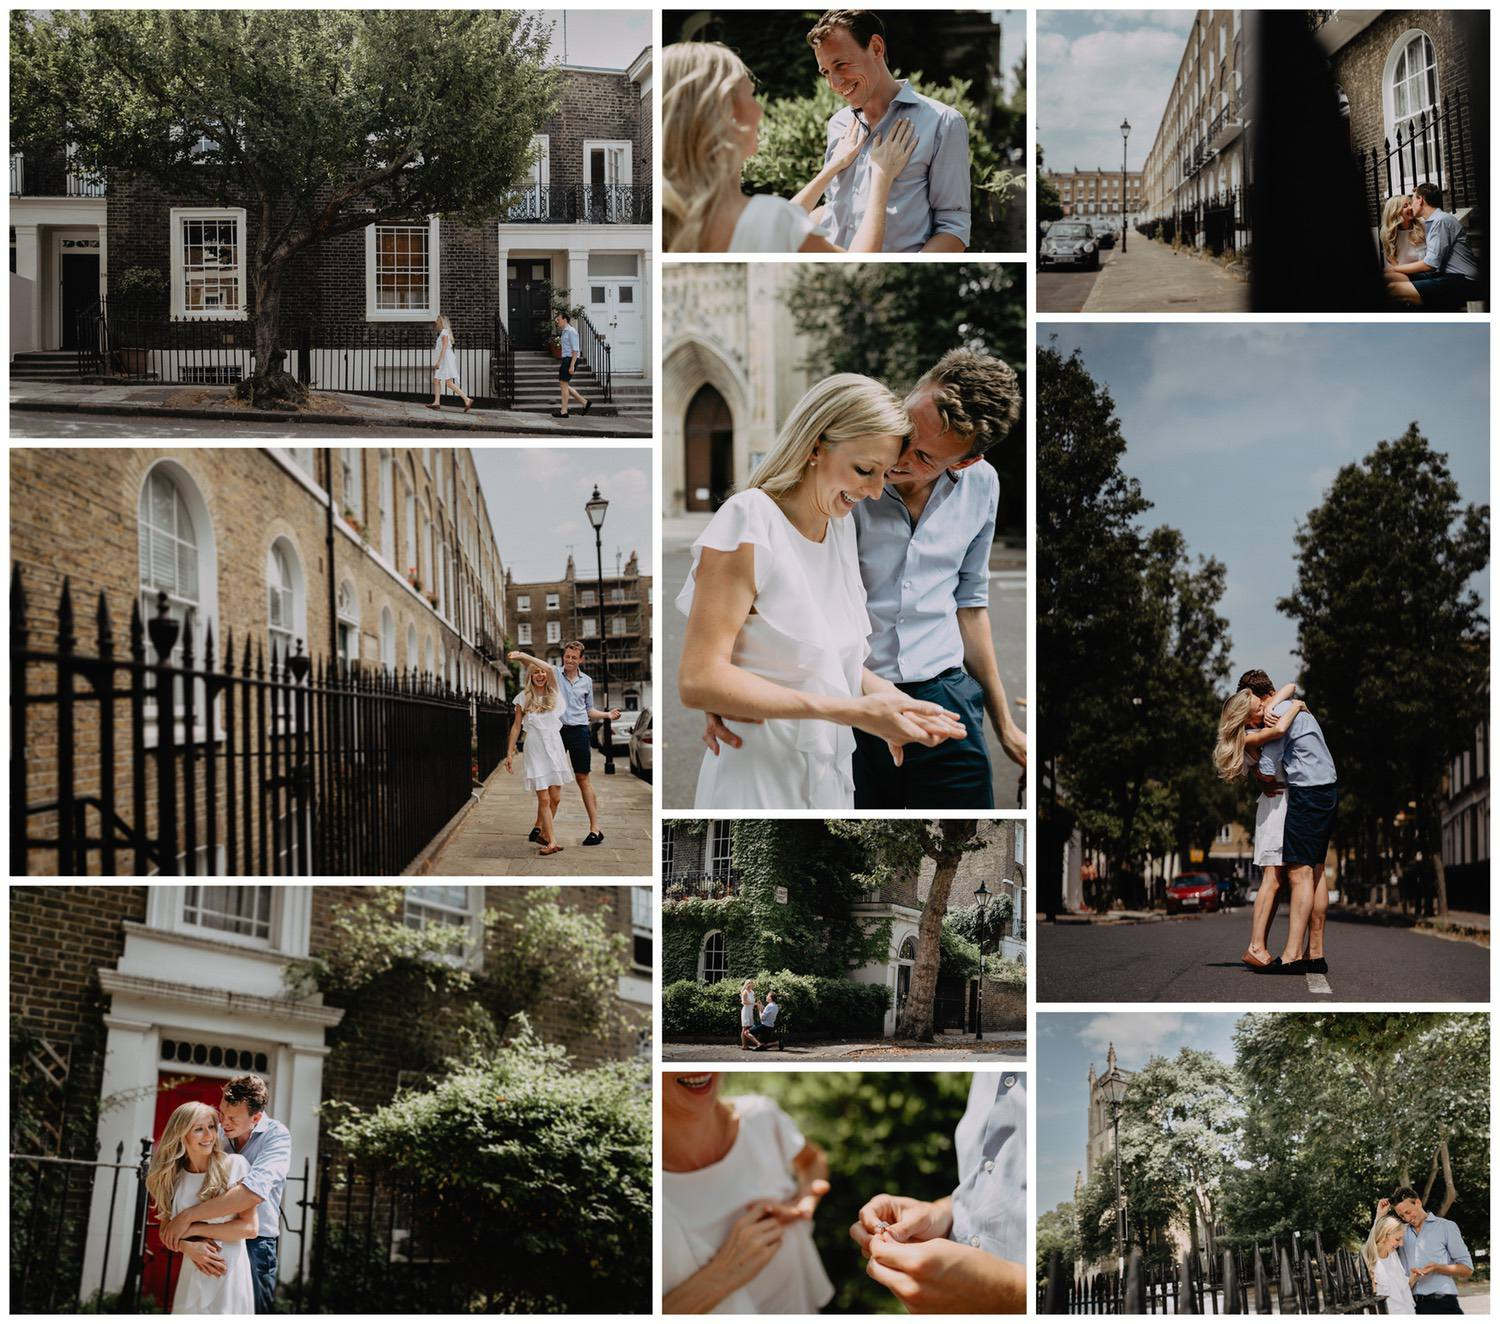 Wedding-Photographer-London-1.jpg